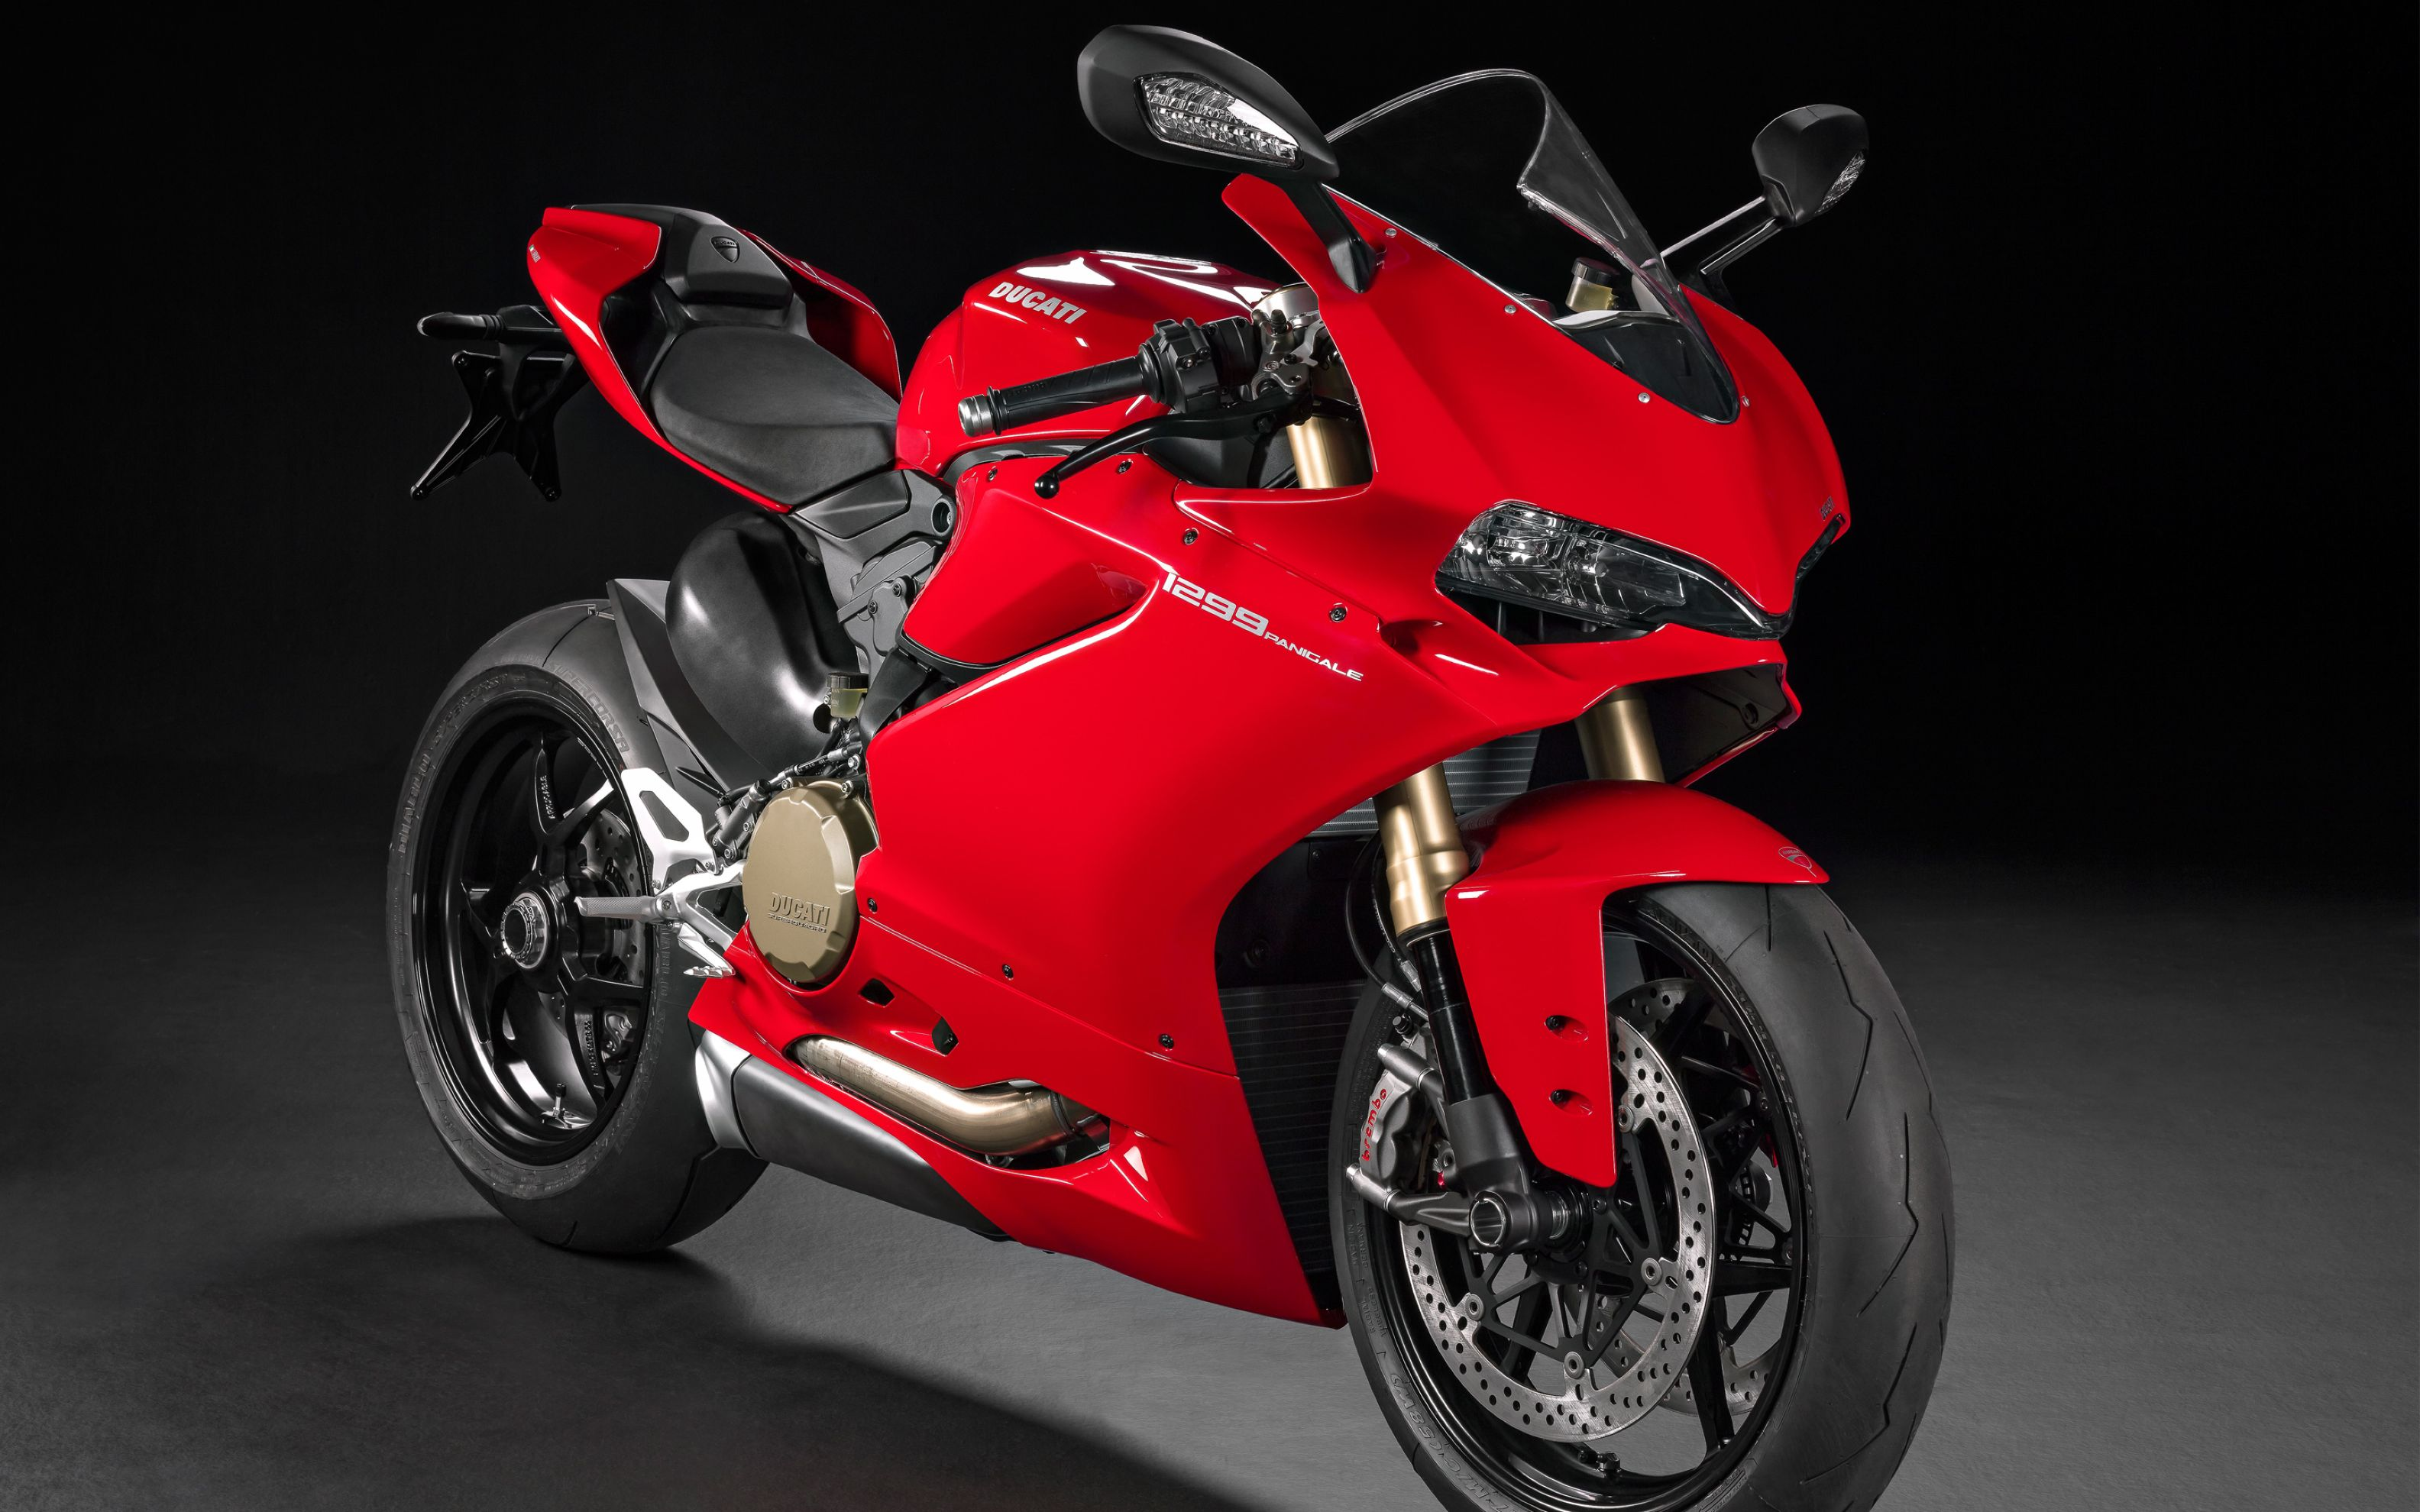 Download free HD 2015 Ducati Superbike 1299 Panigale Wide Wallpaper, image